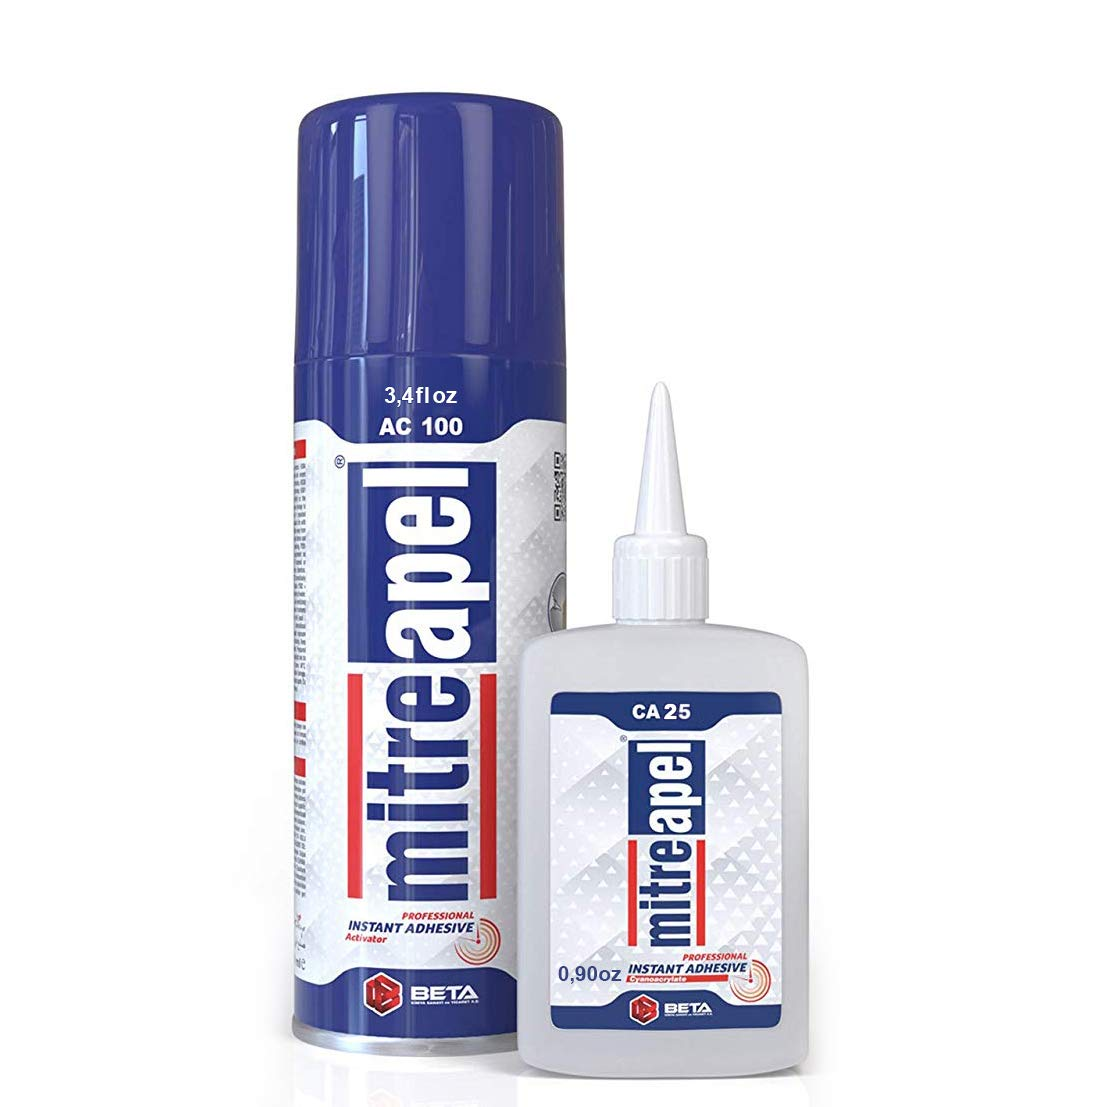 MITREAPEL Super CA Glue (0.85 oz.) with Spray Adhesive Activator (3.35 fl oz.) - Crazy Craft Glue for Wood, Plastic, Metal, Leather, Ceramic - Cyanoacrylate Glue for Crafting and Building (1PACK) by Mitreapel